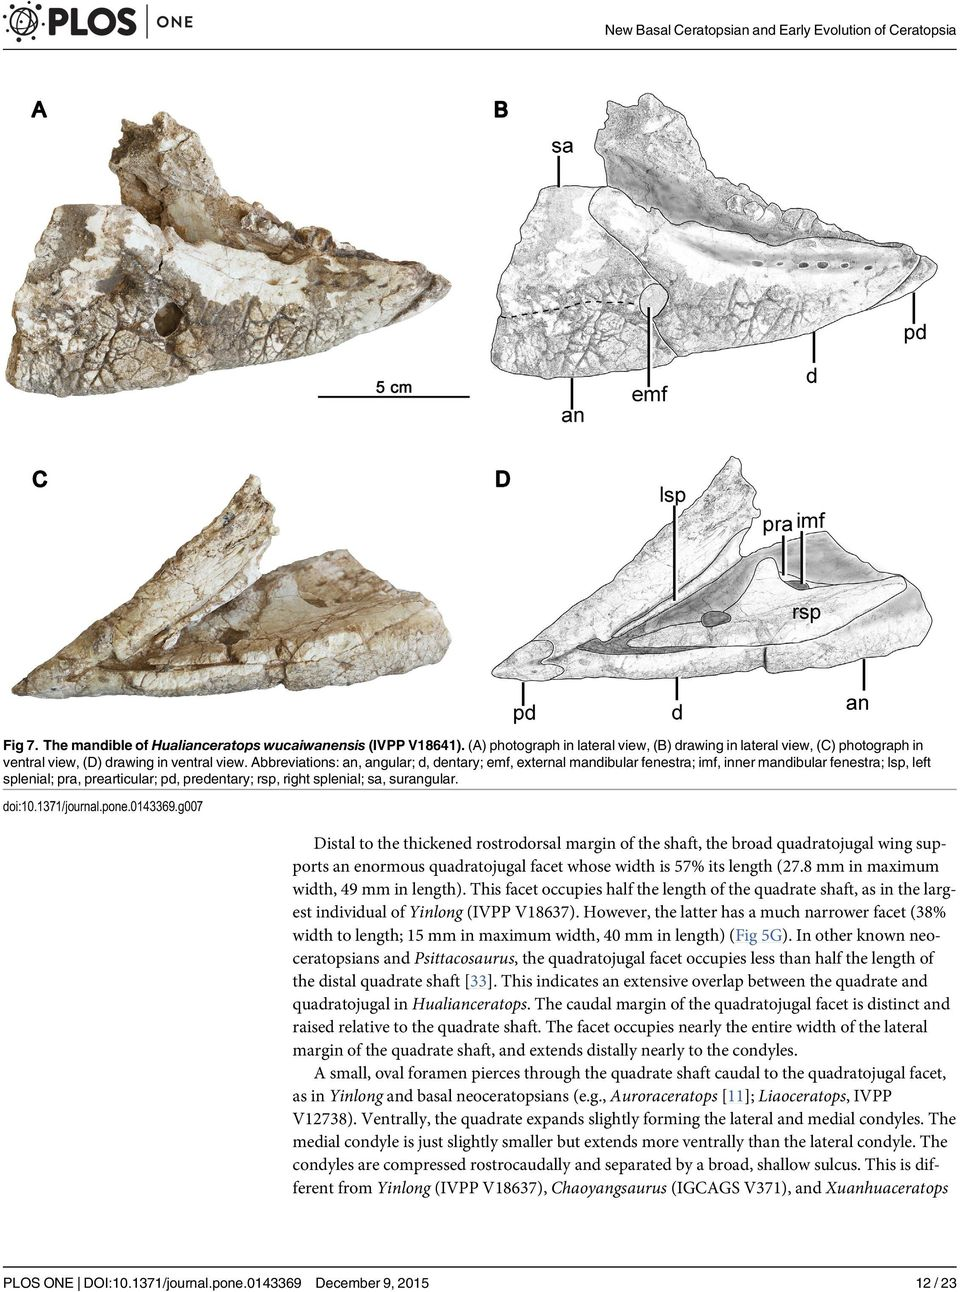 doi:10.1371/journal.pone.0143369.g007 Distal to the thickened rostrodorsal margin of the shaft, the broad quadratojugal wing supports an enormous quadratojugal facet whose width is 57% its length (27.